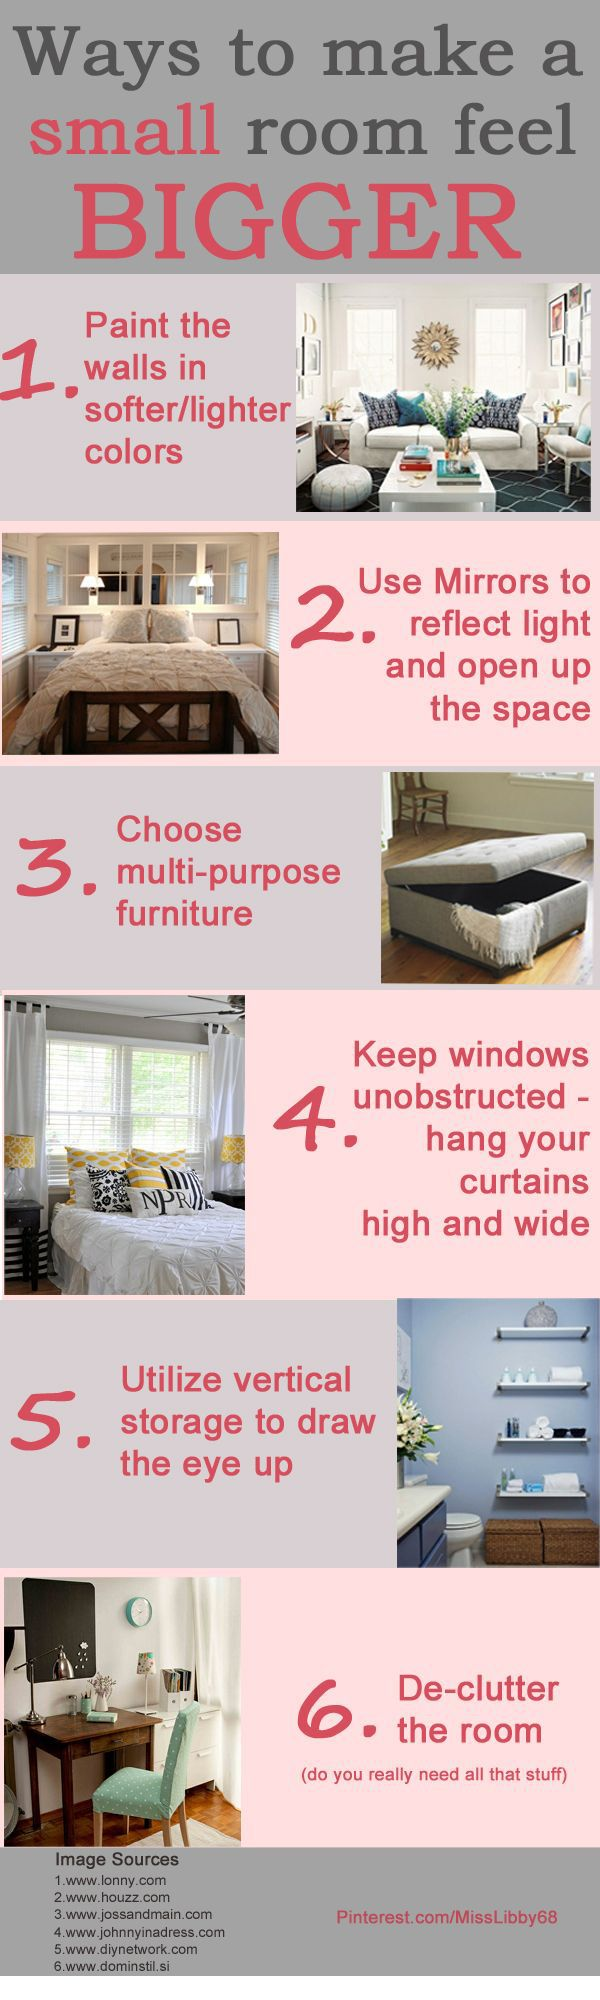 20 bedroom organization tips to make the most of a small space - Bedroom Cabinets For Small Rooms